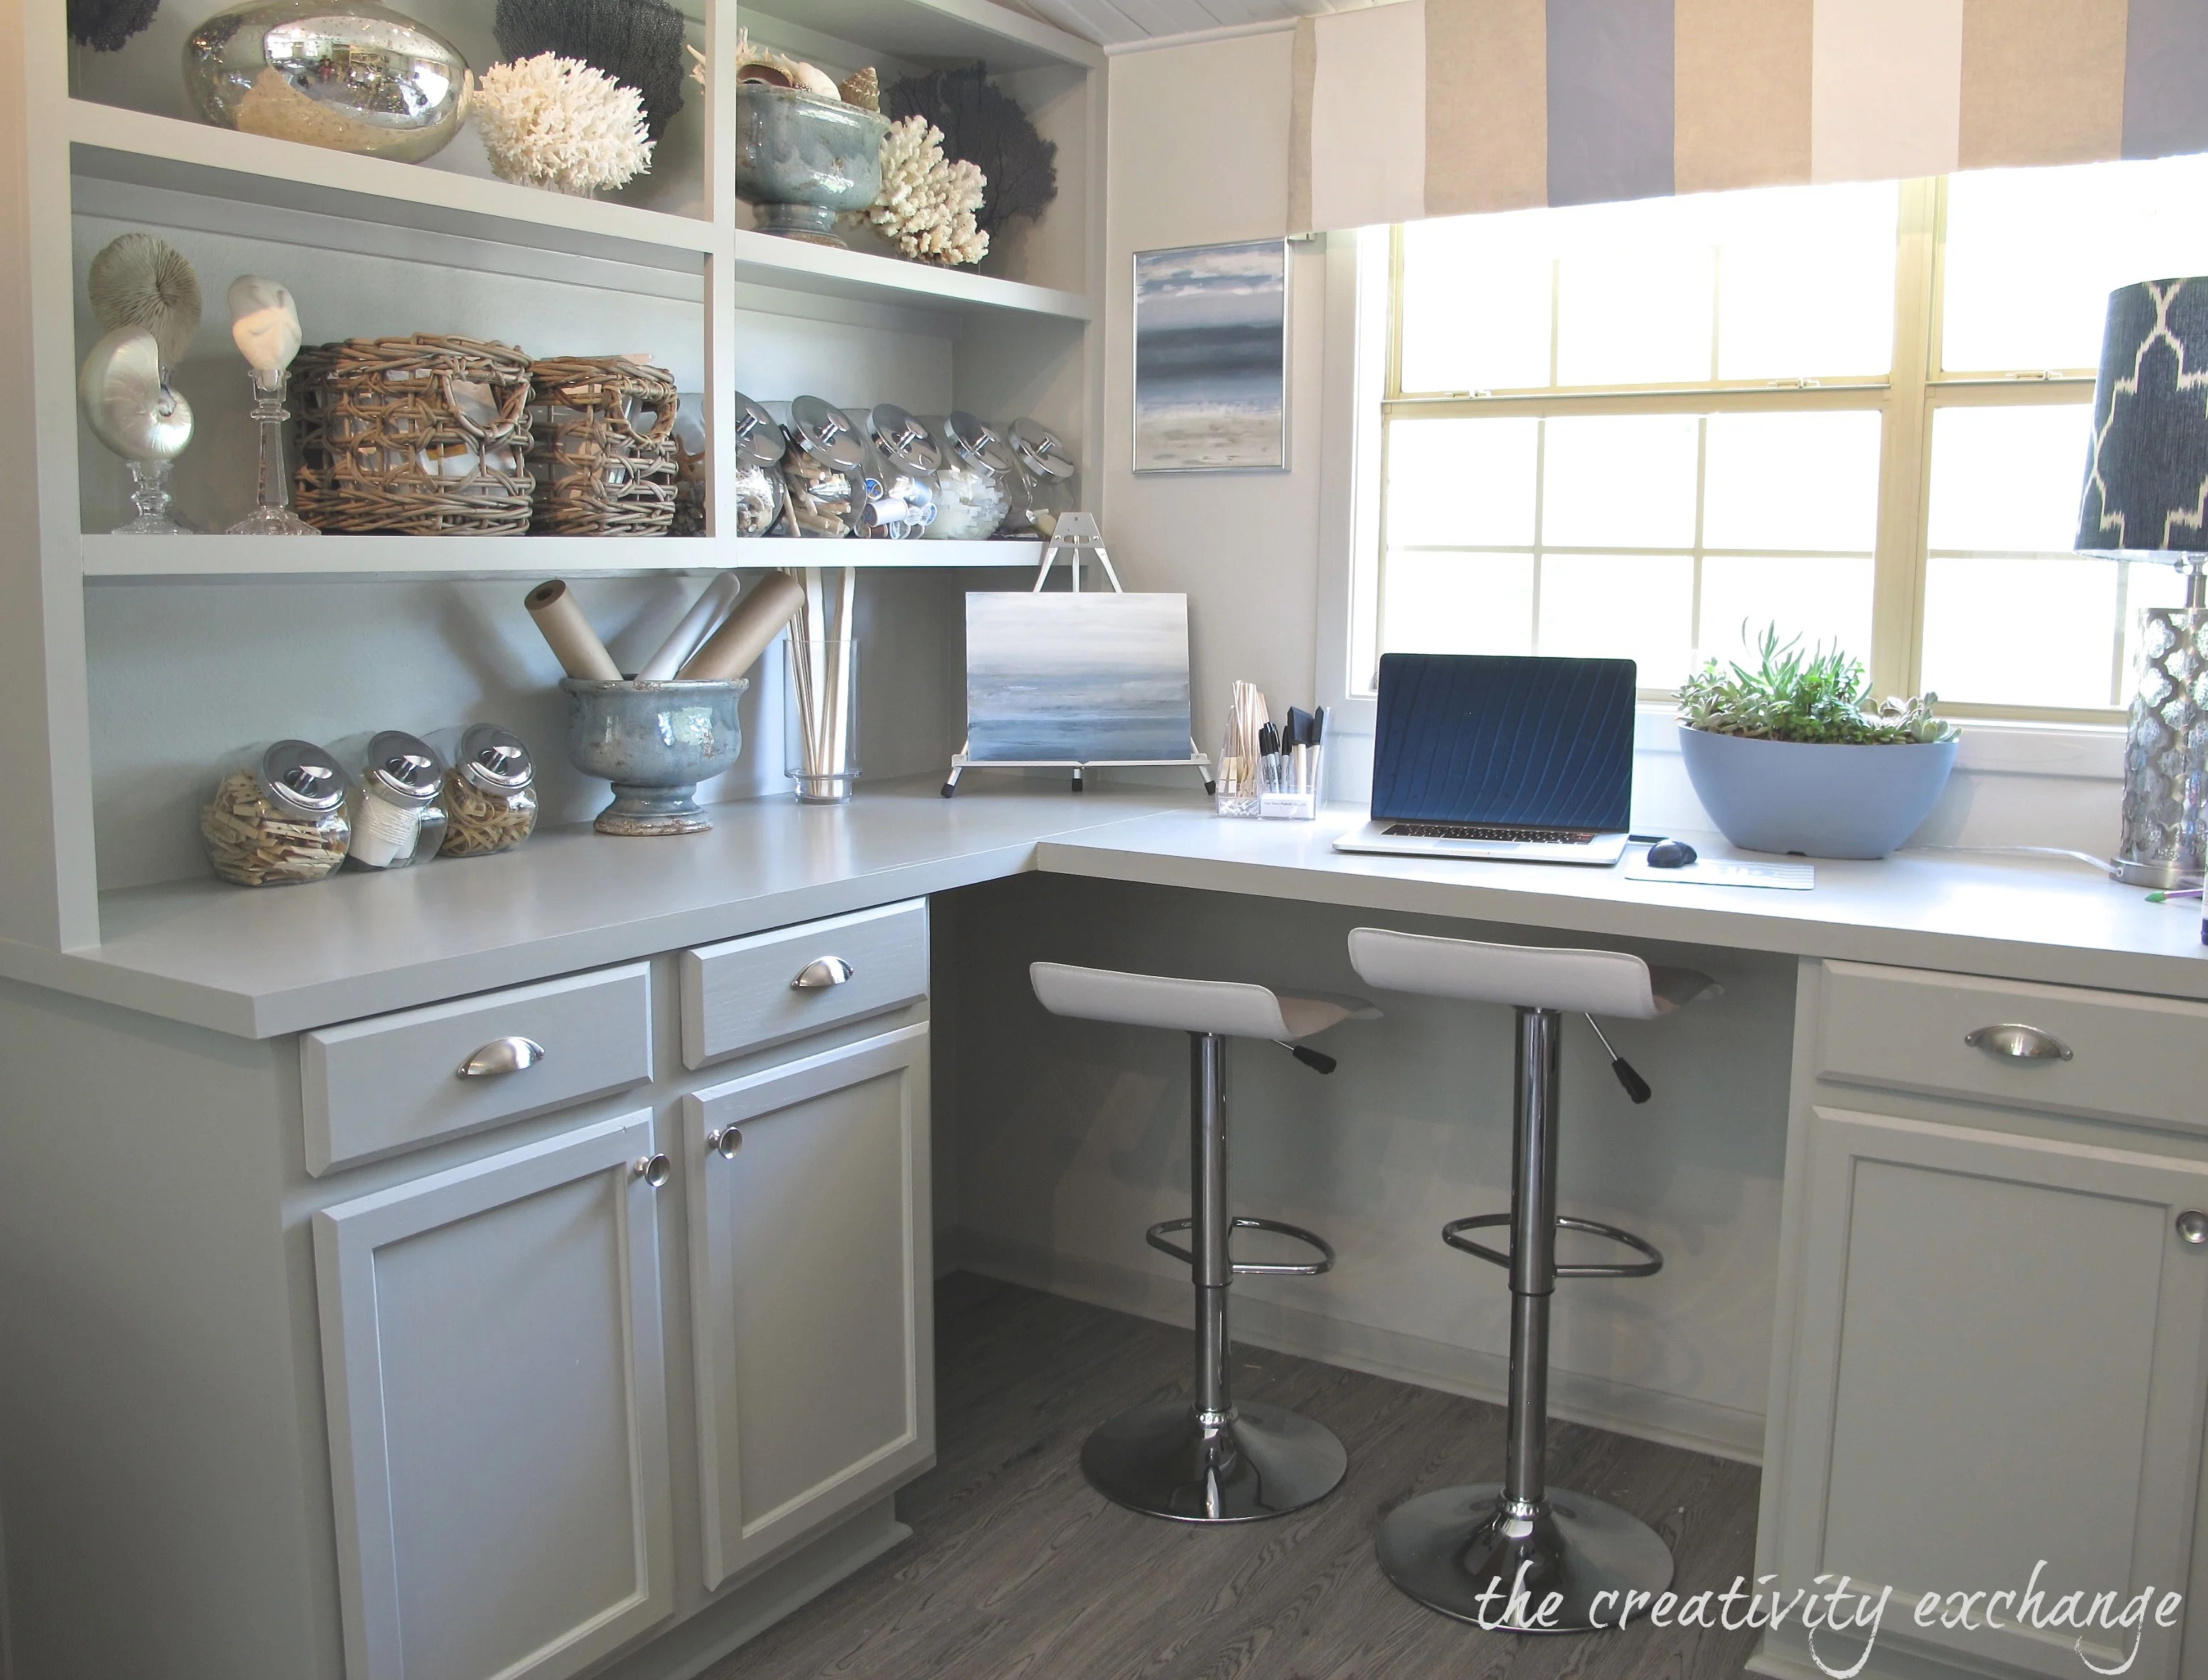 Cabinets painted in Mindful Gray by Sherwin Williams The Creativity Exchange